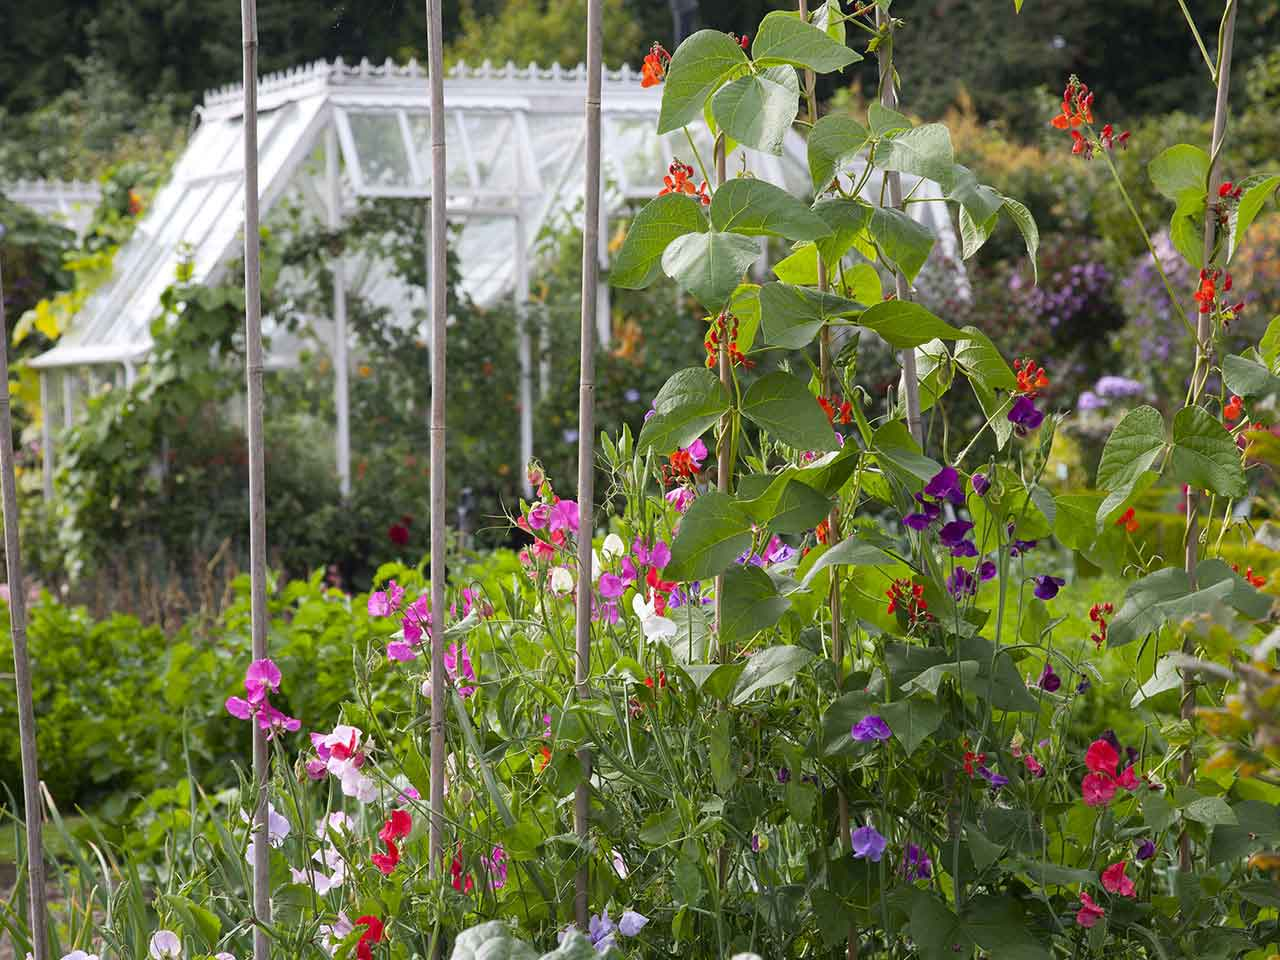 Sweet peas growing in cottage garden